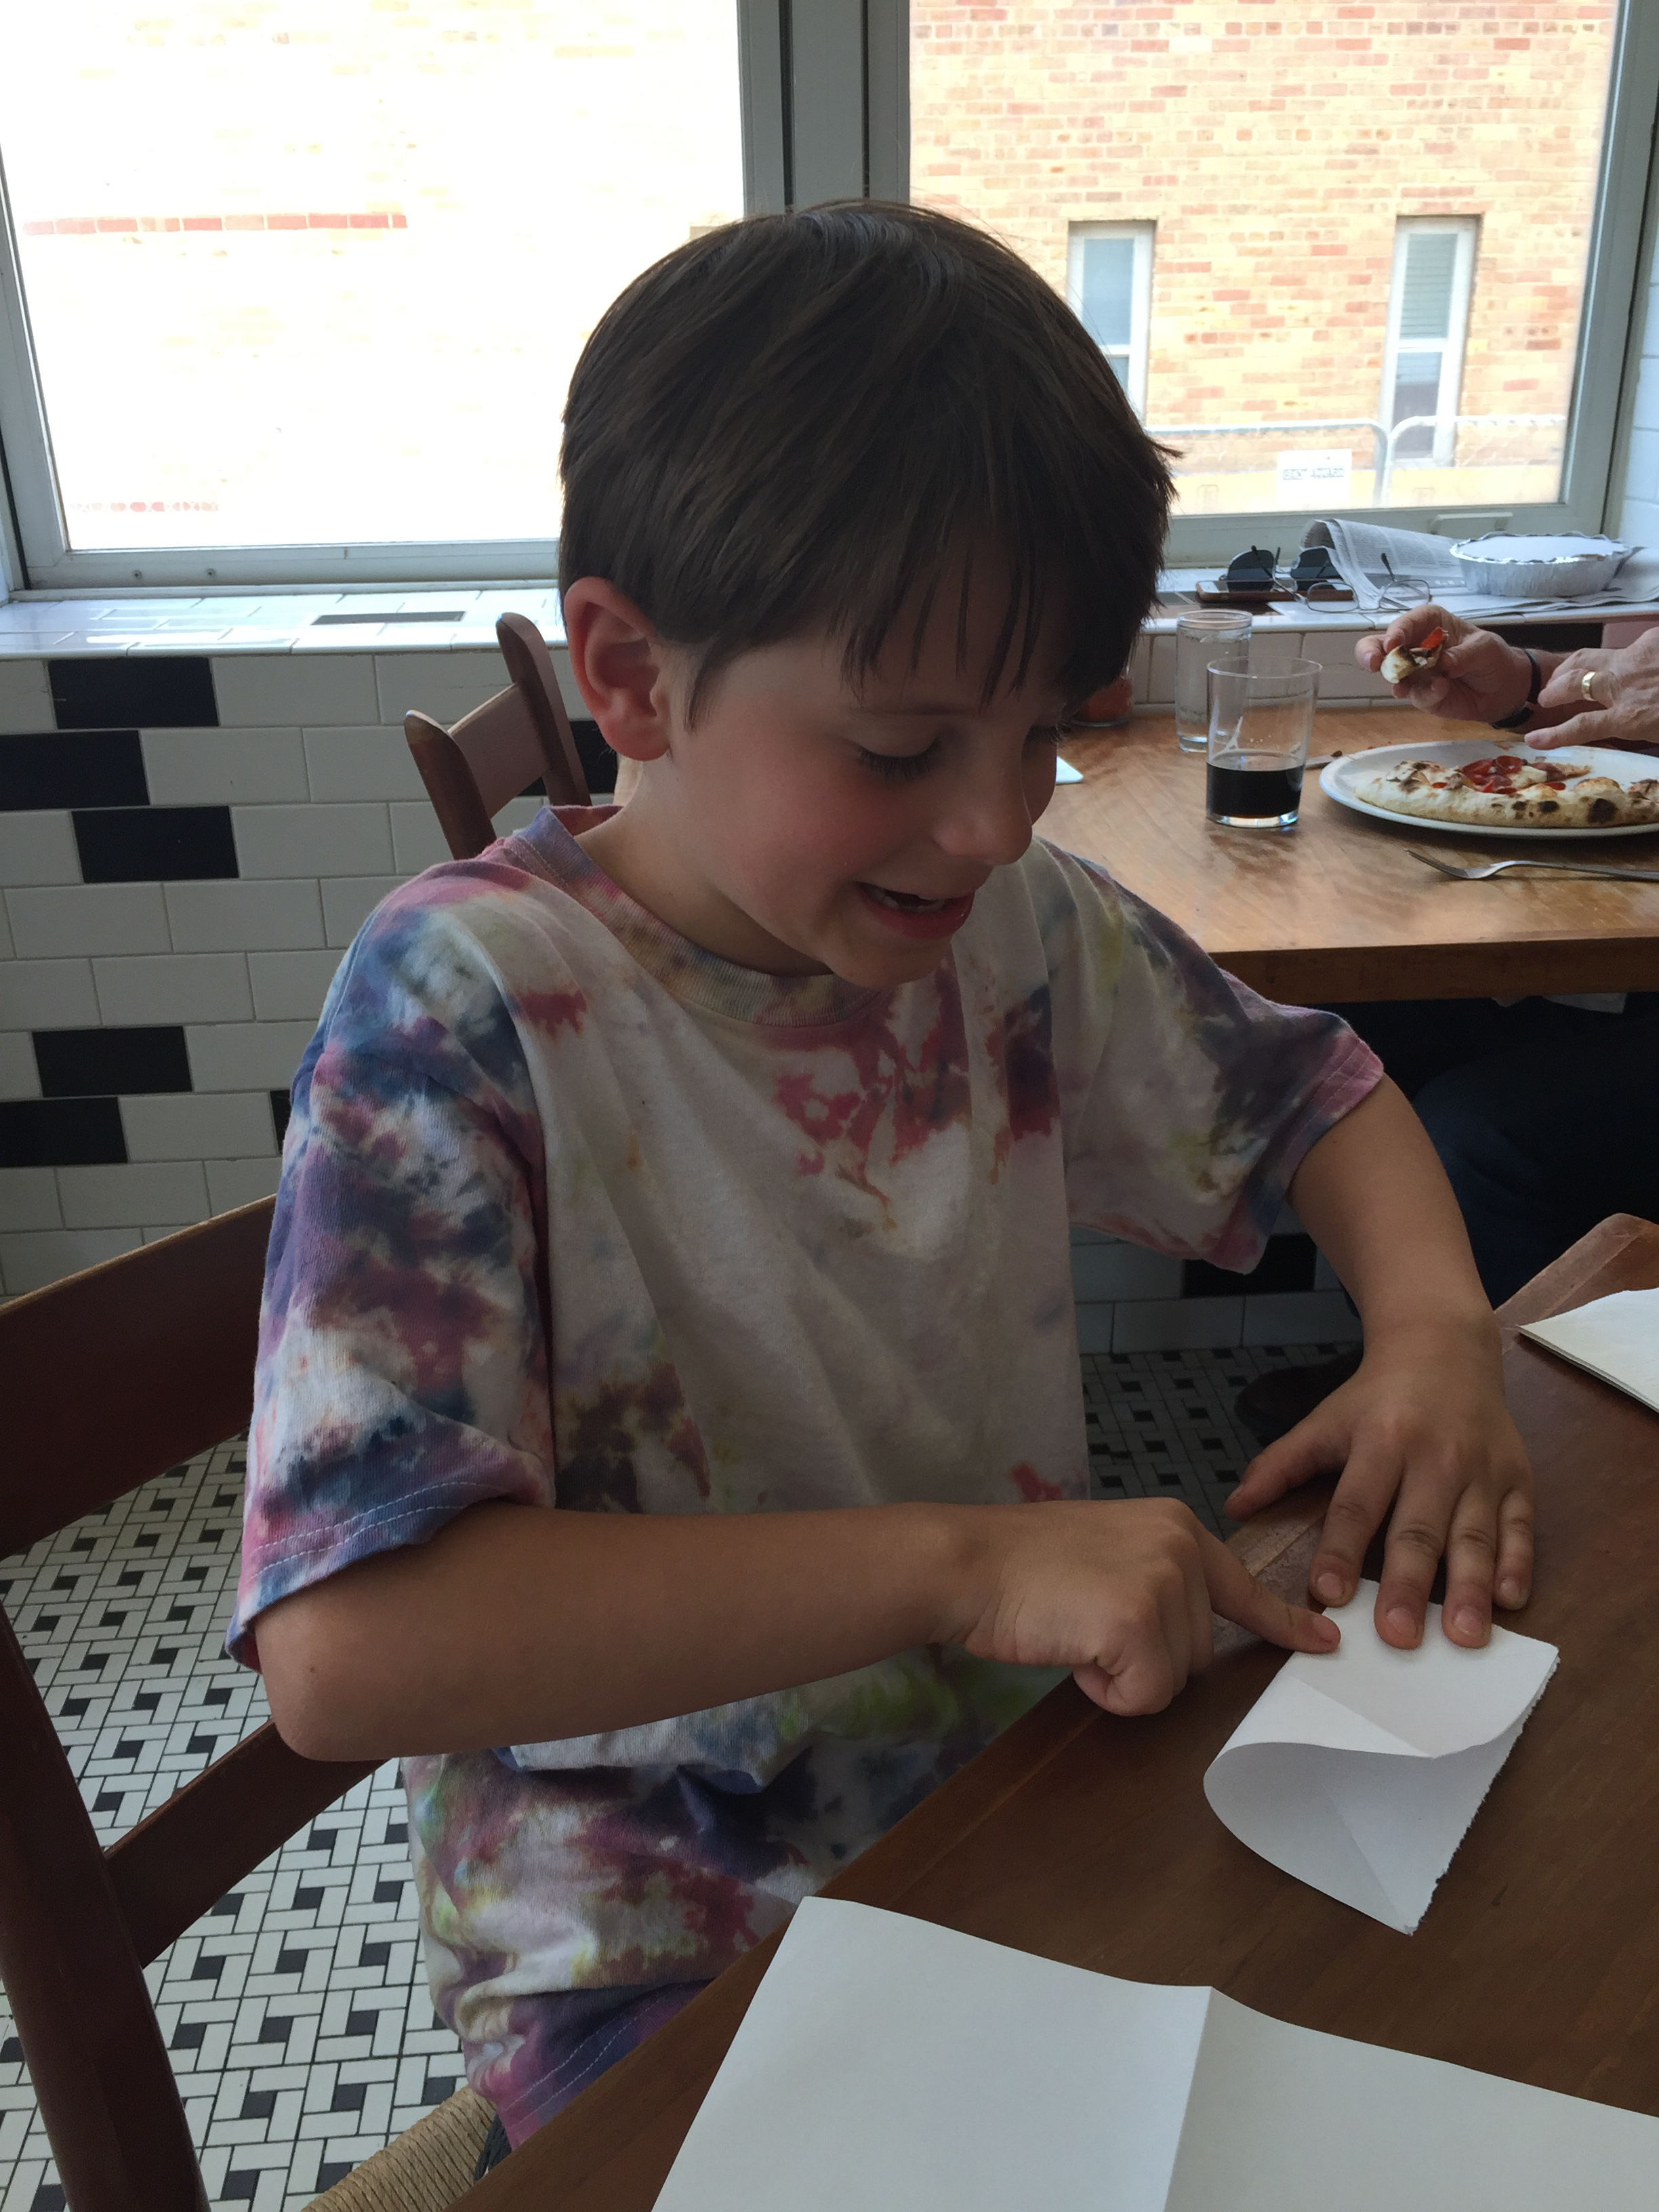 Ol and I went out to lunch on his last day of school. He loves to make origami cranes.